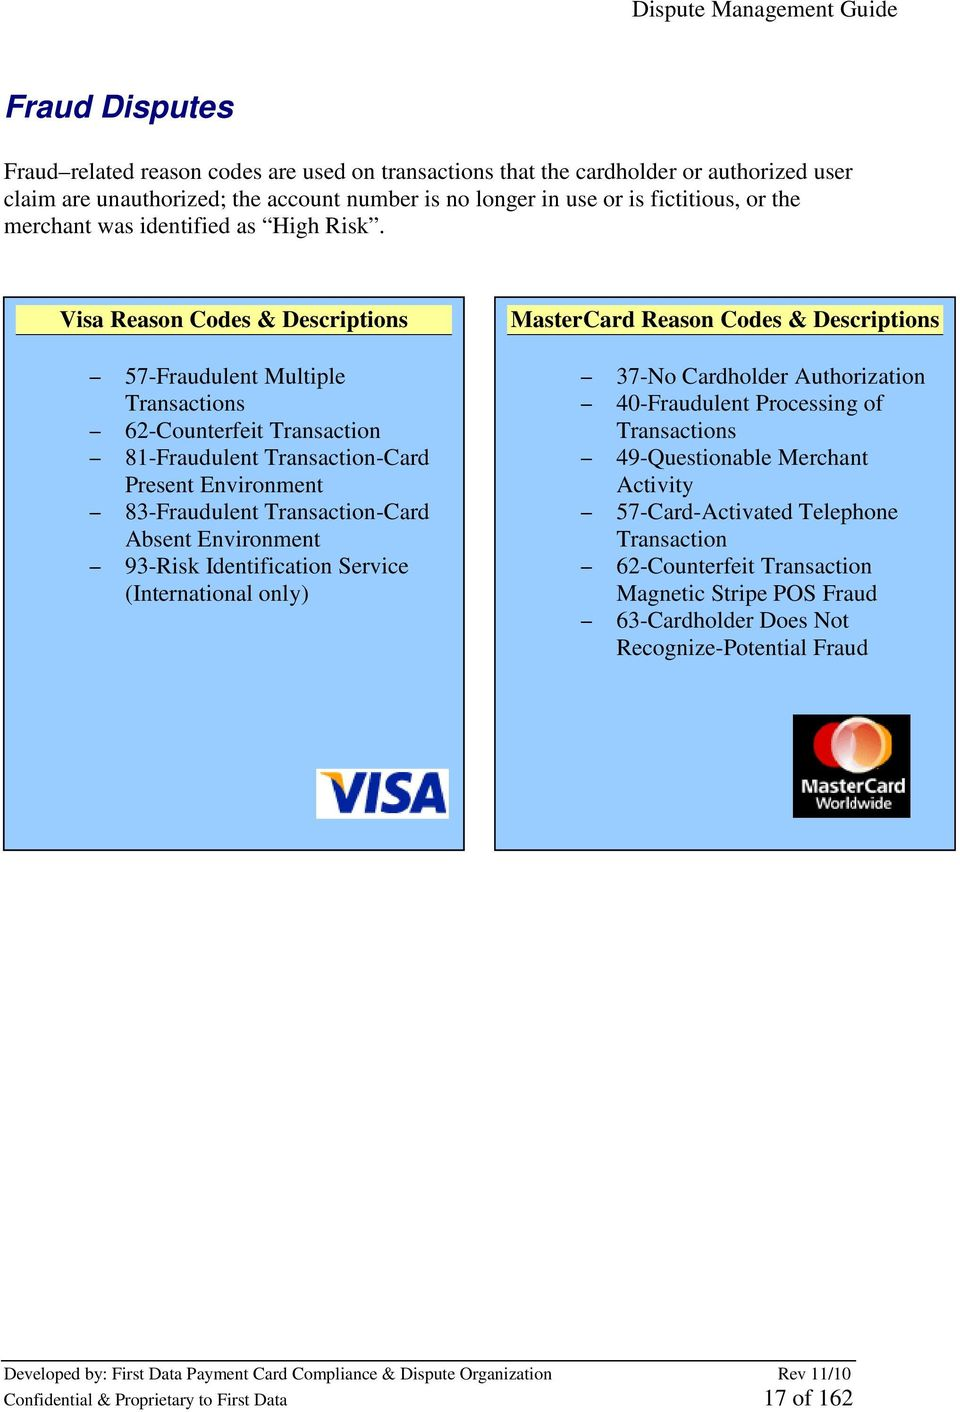 Visa Reason Codes & Descriptions 57-Fraudulent Multiple Transactions 62-Counterfeit Transaction 81-Fraudulent Transaction-Card Present Environment 83-Fraudulent Transaction-Card Absent Environment